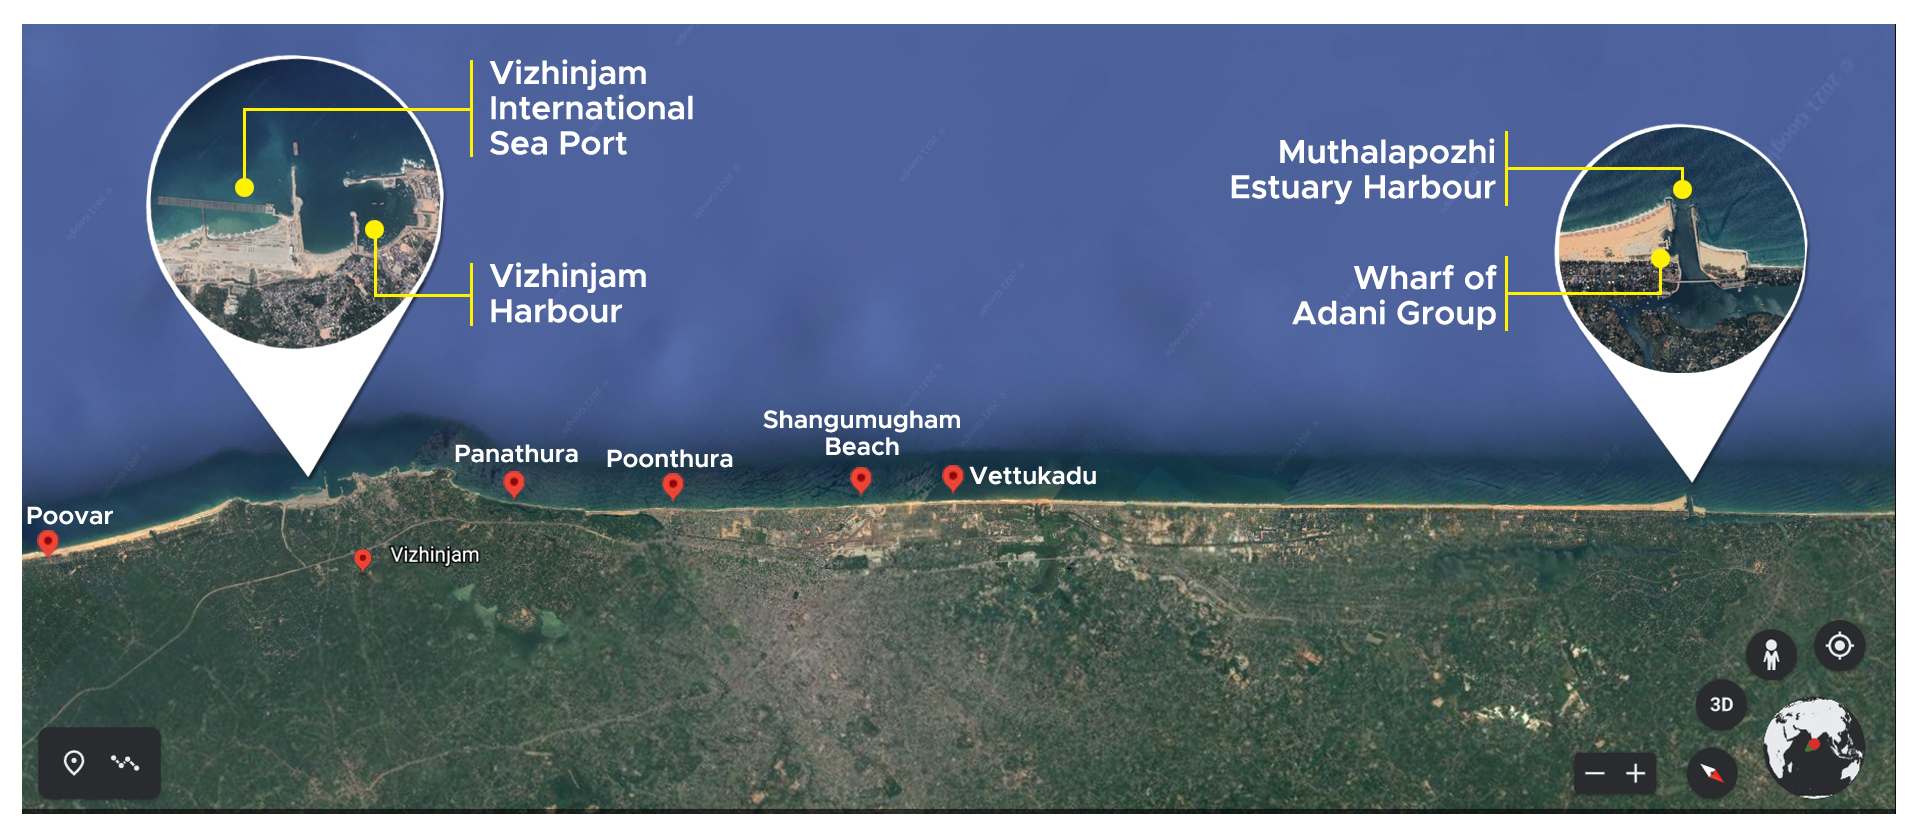 Google map showing locations of Vizhinjam and nearby coastal trouble spots